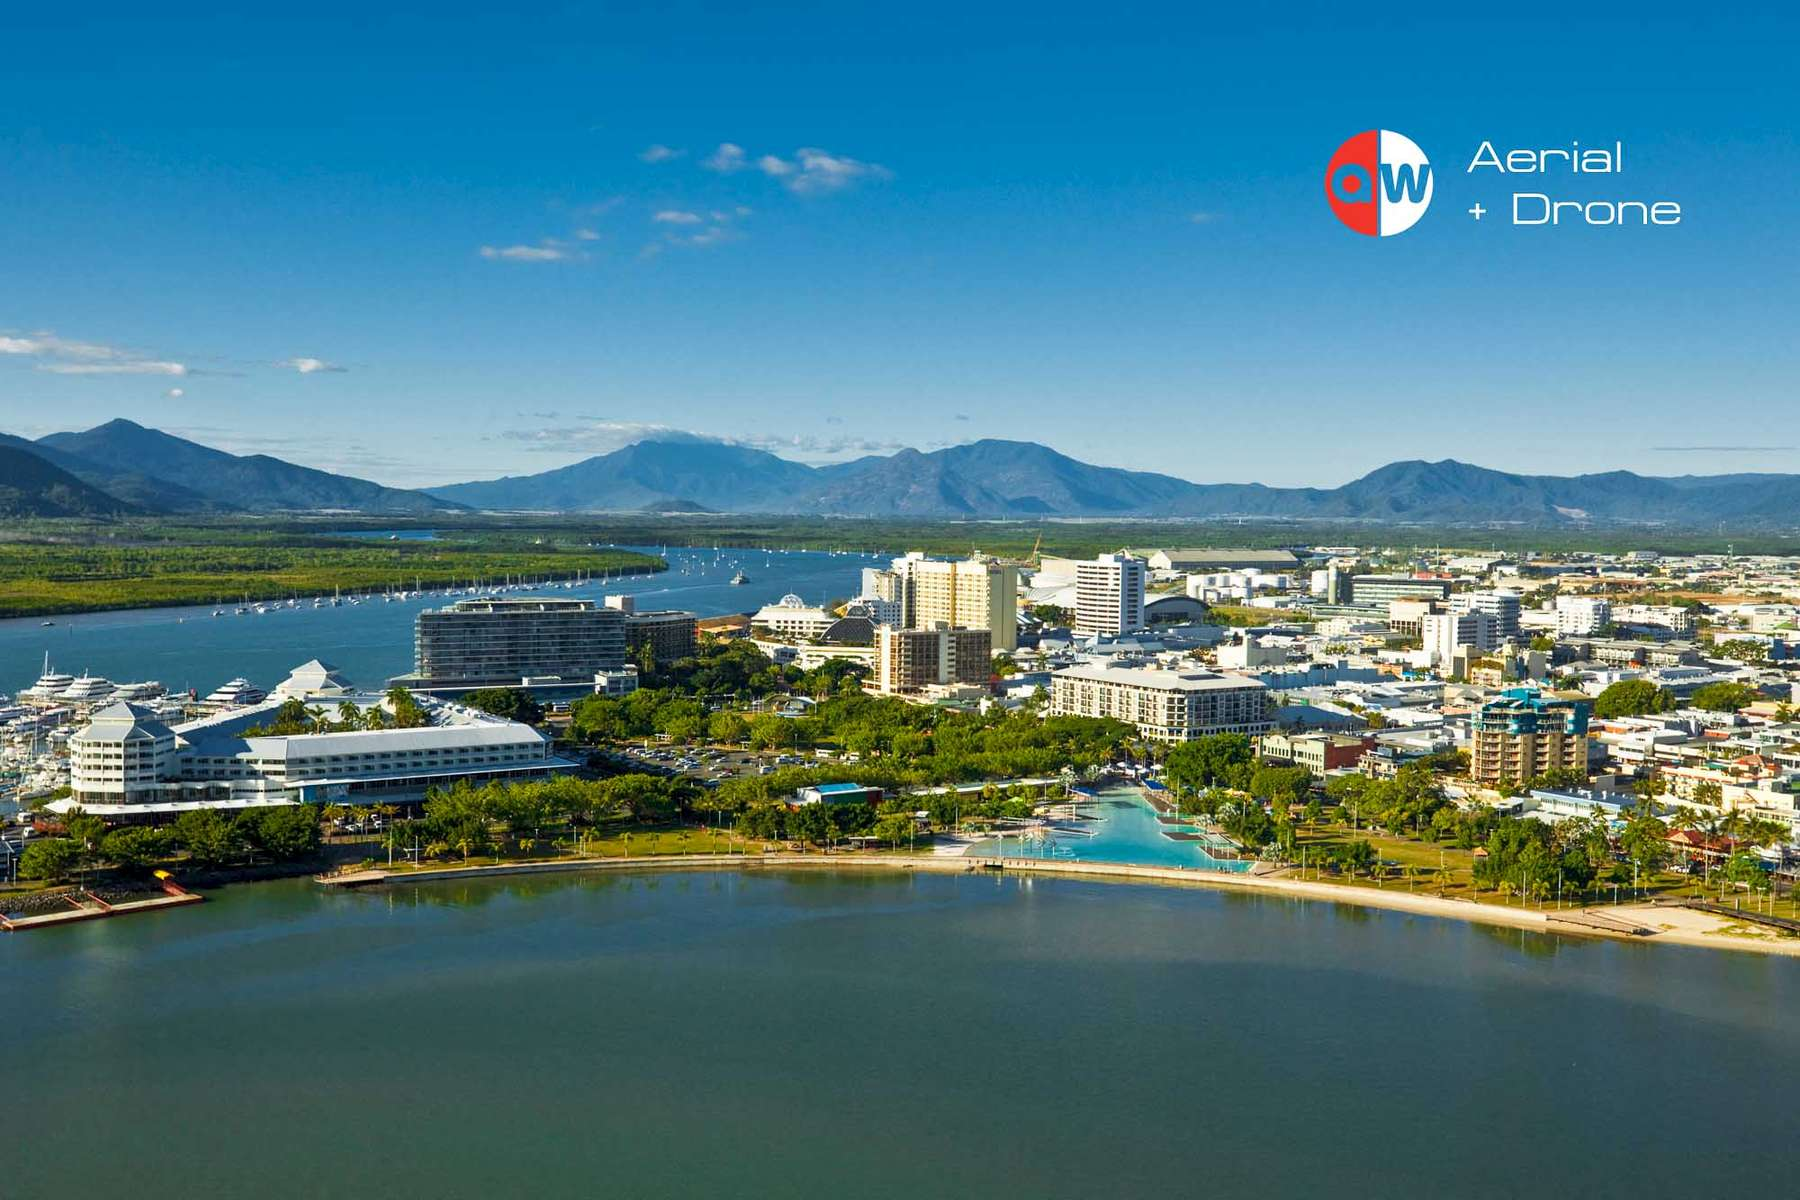 Aerial view of Cairns Esplanade Lagoon by photographer Cairns